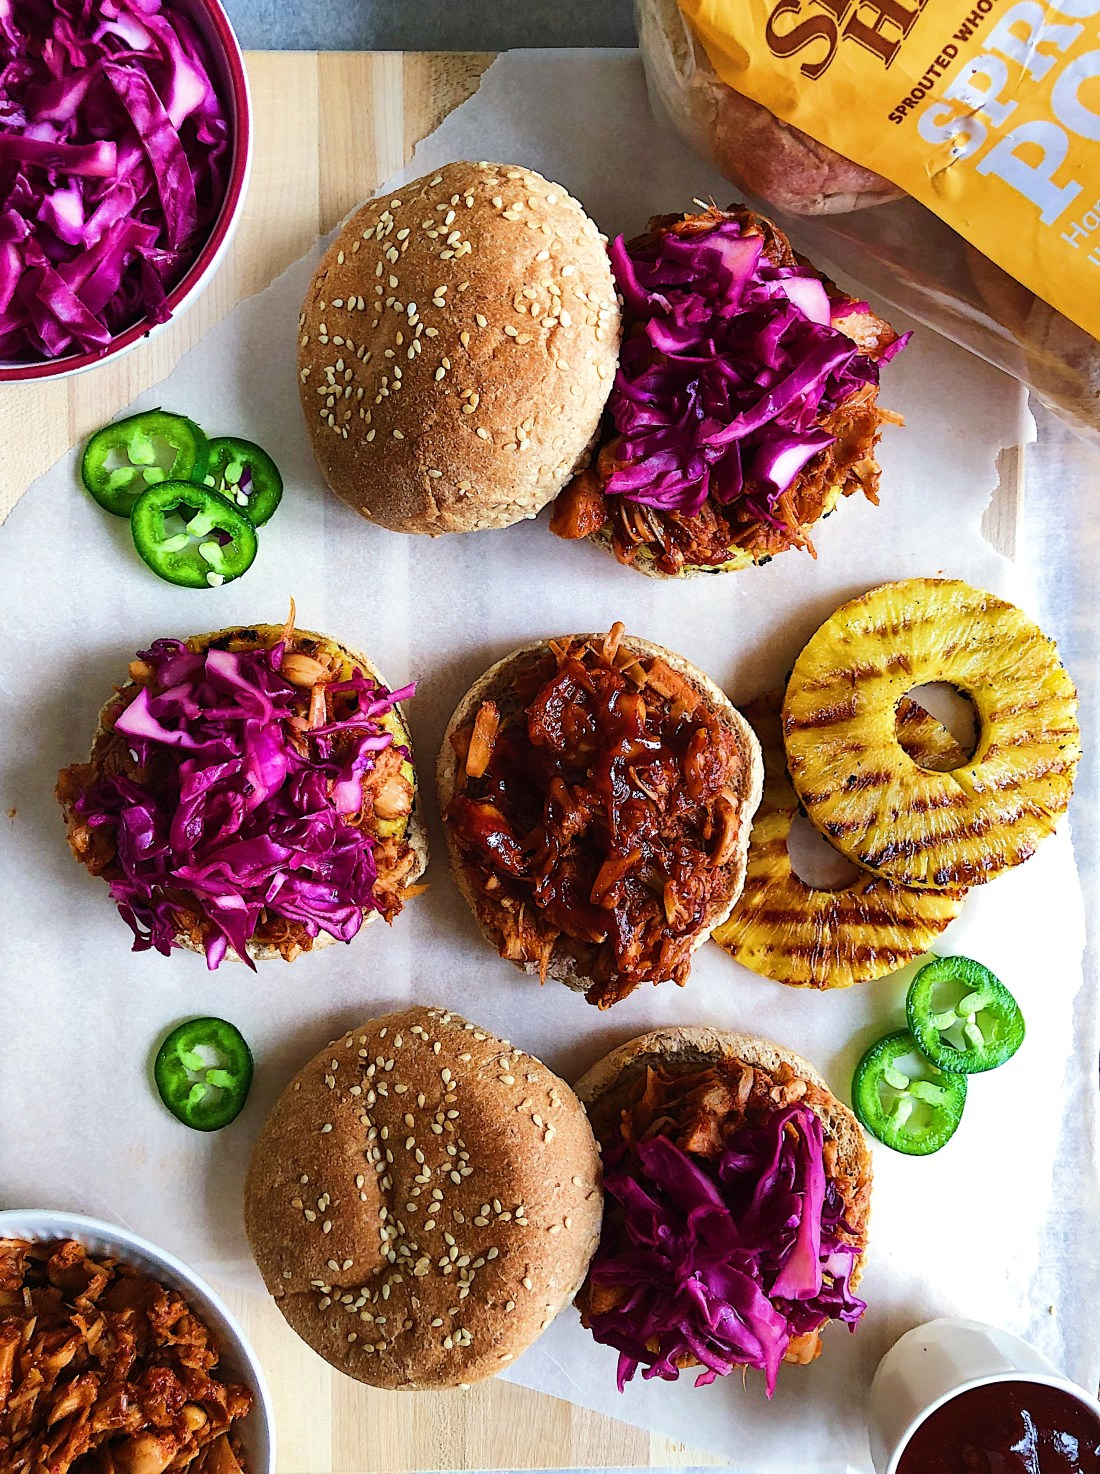 BBQ JACKFRUIT SANDWICH WITH GRILLED PINEAPPLE AND CABBAGE SLAW